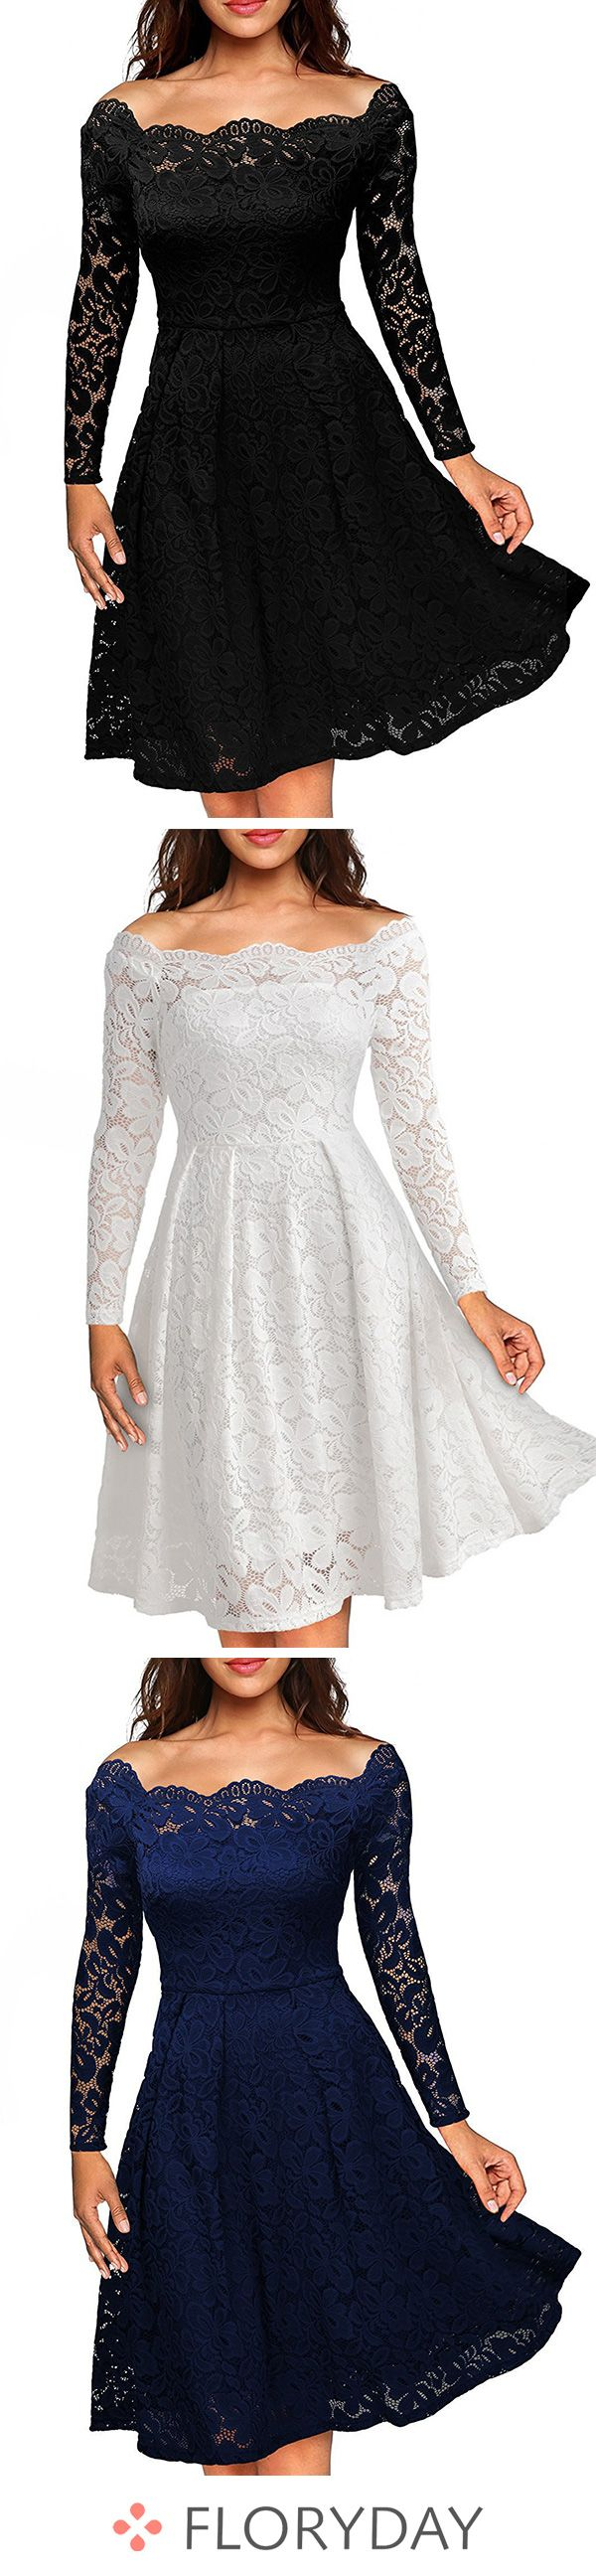 Solid lace long sleeve kneelength aline dress solid dress lace